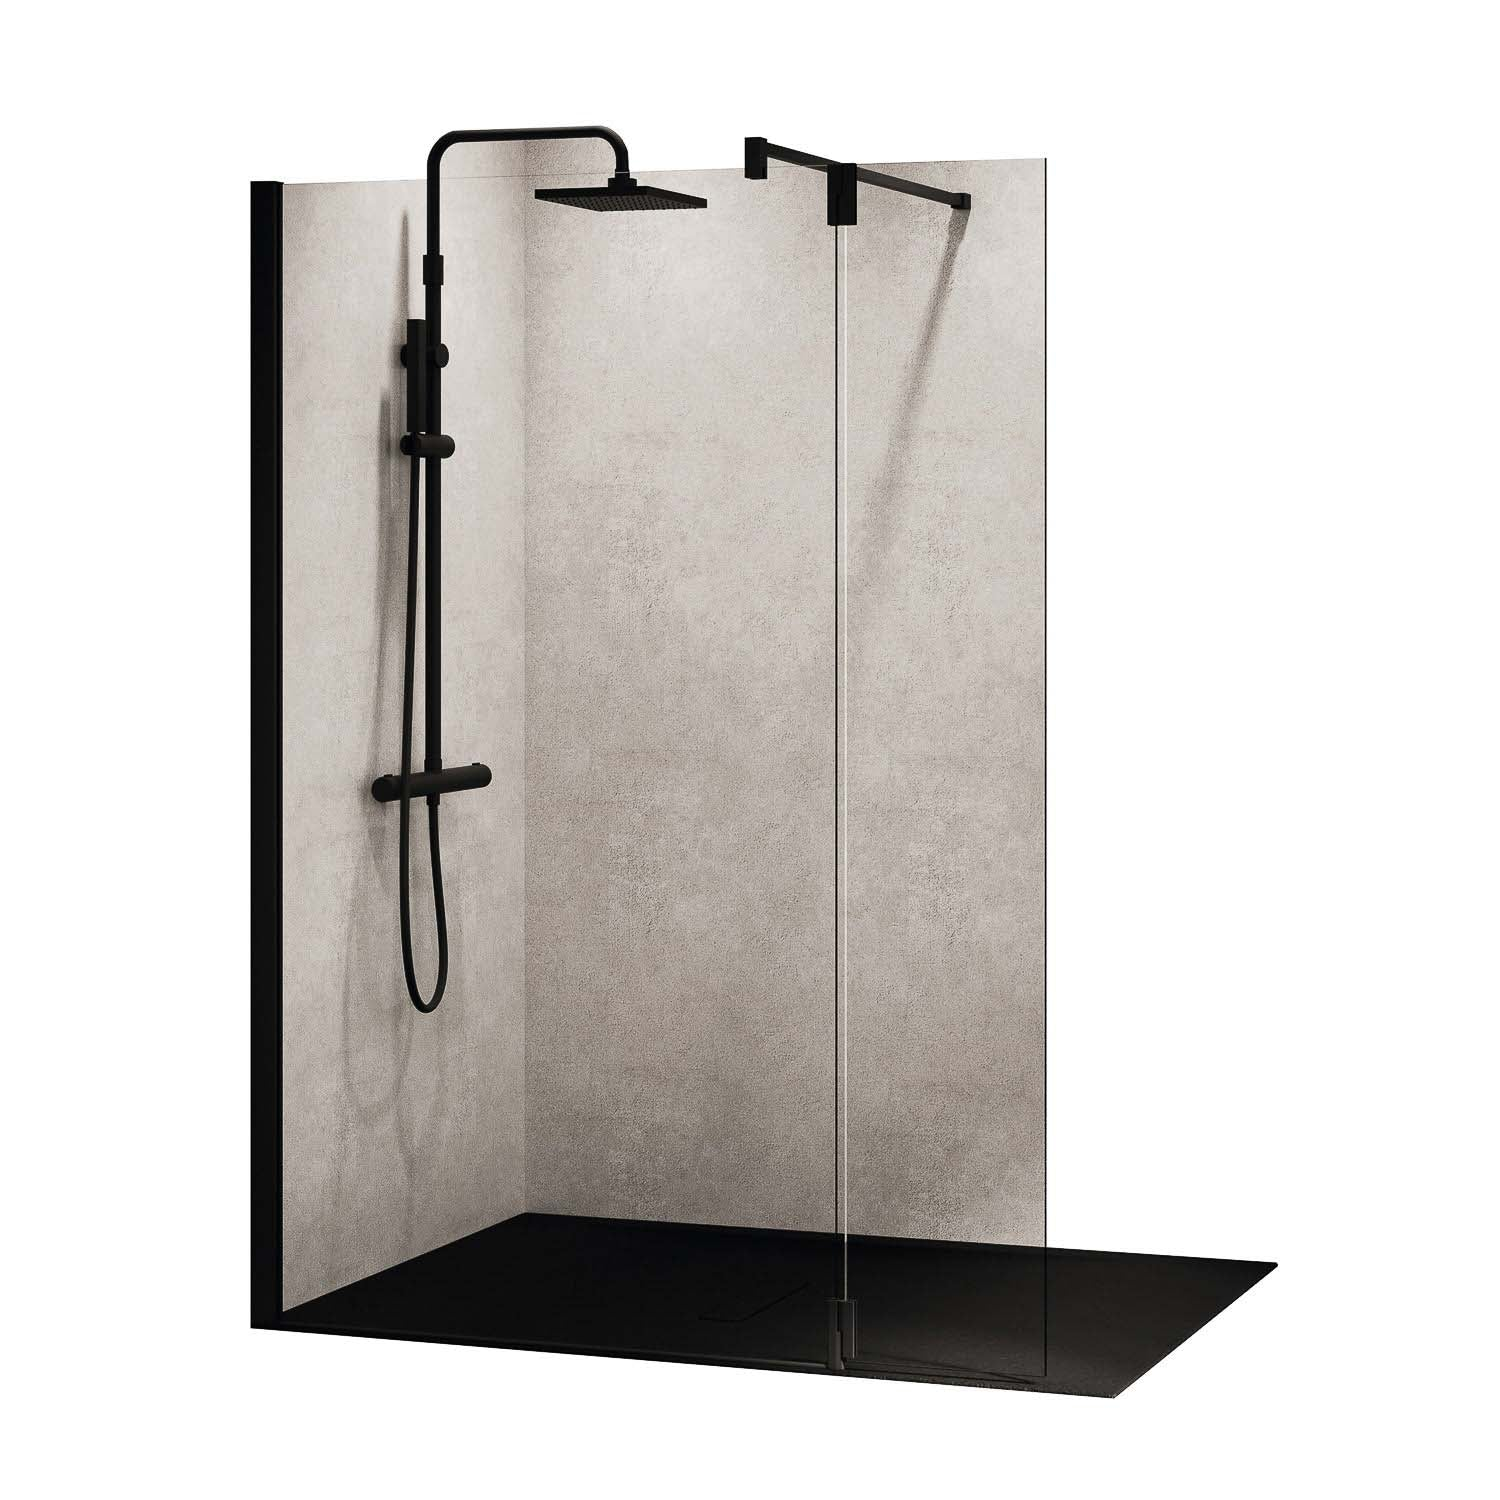 1170-1200mm Ergo Wet Room Screen Clear Glass with a matt black finish on a white background